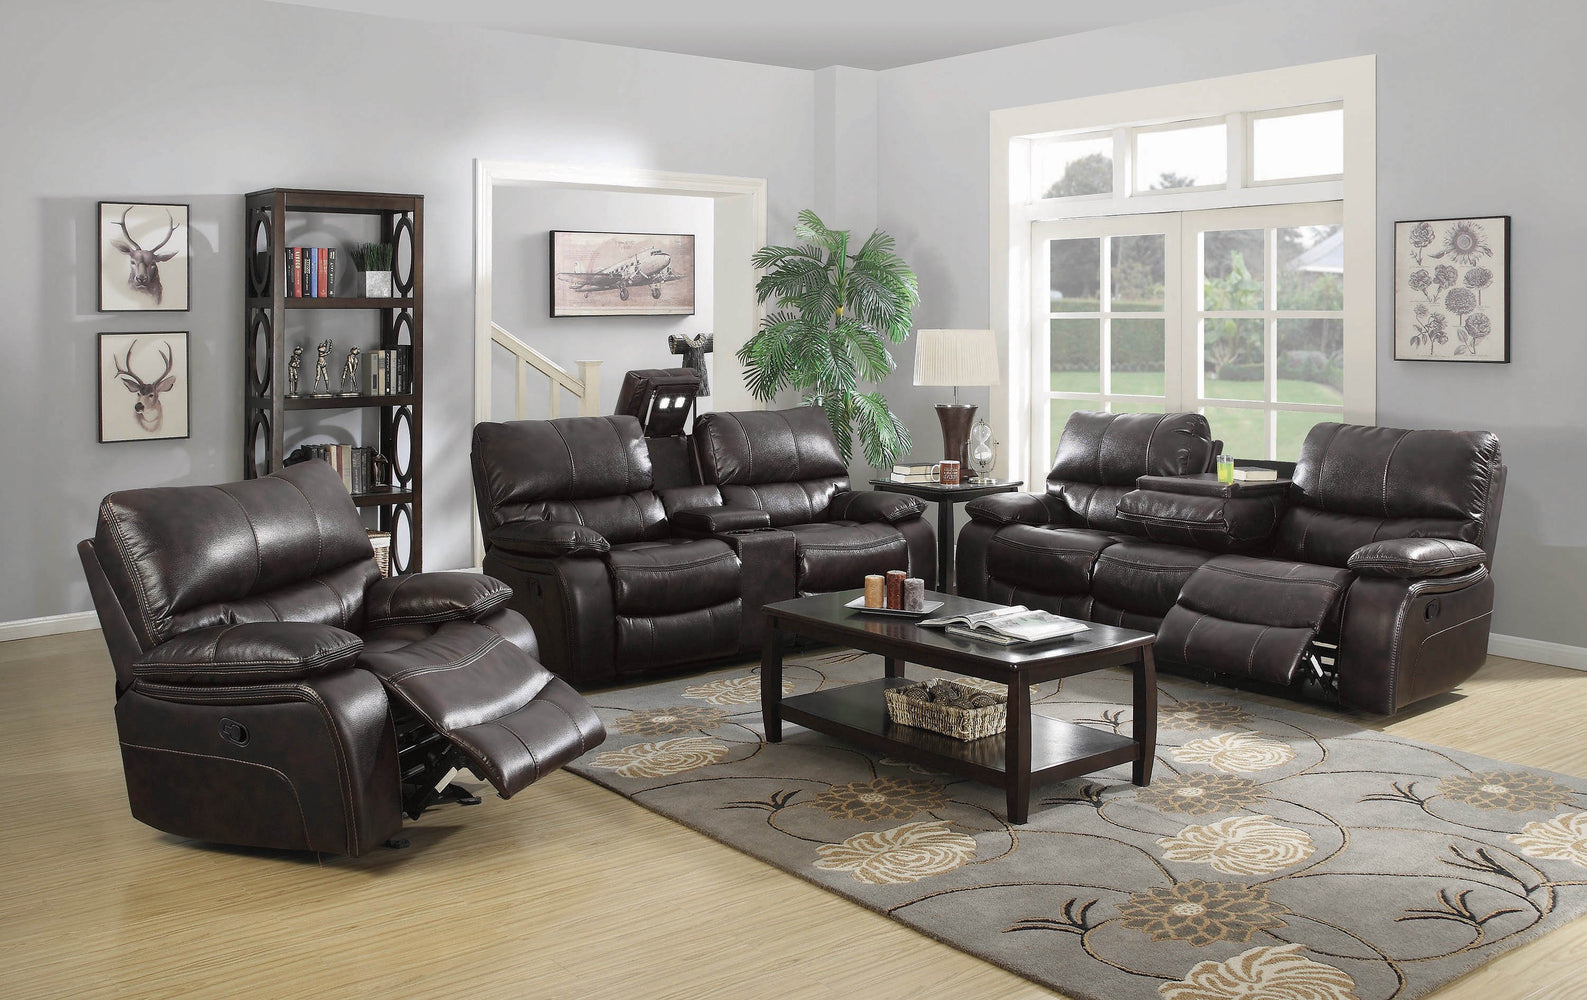 Willemse_Chocolate_Reclining_Sofa_With_Drop_Down_Table_1